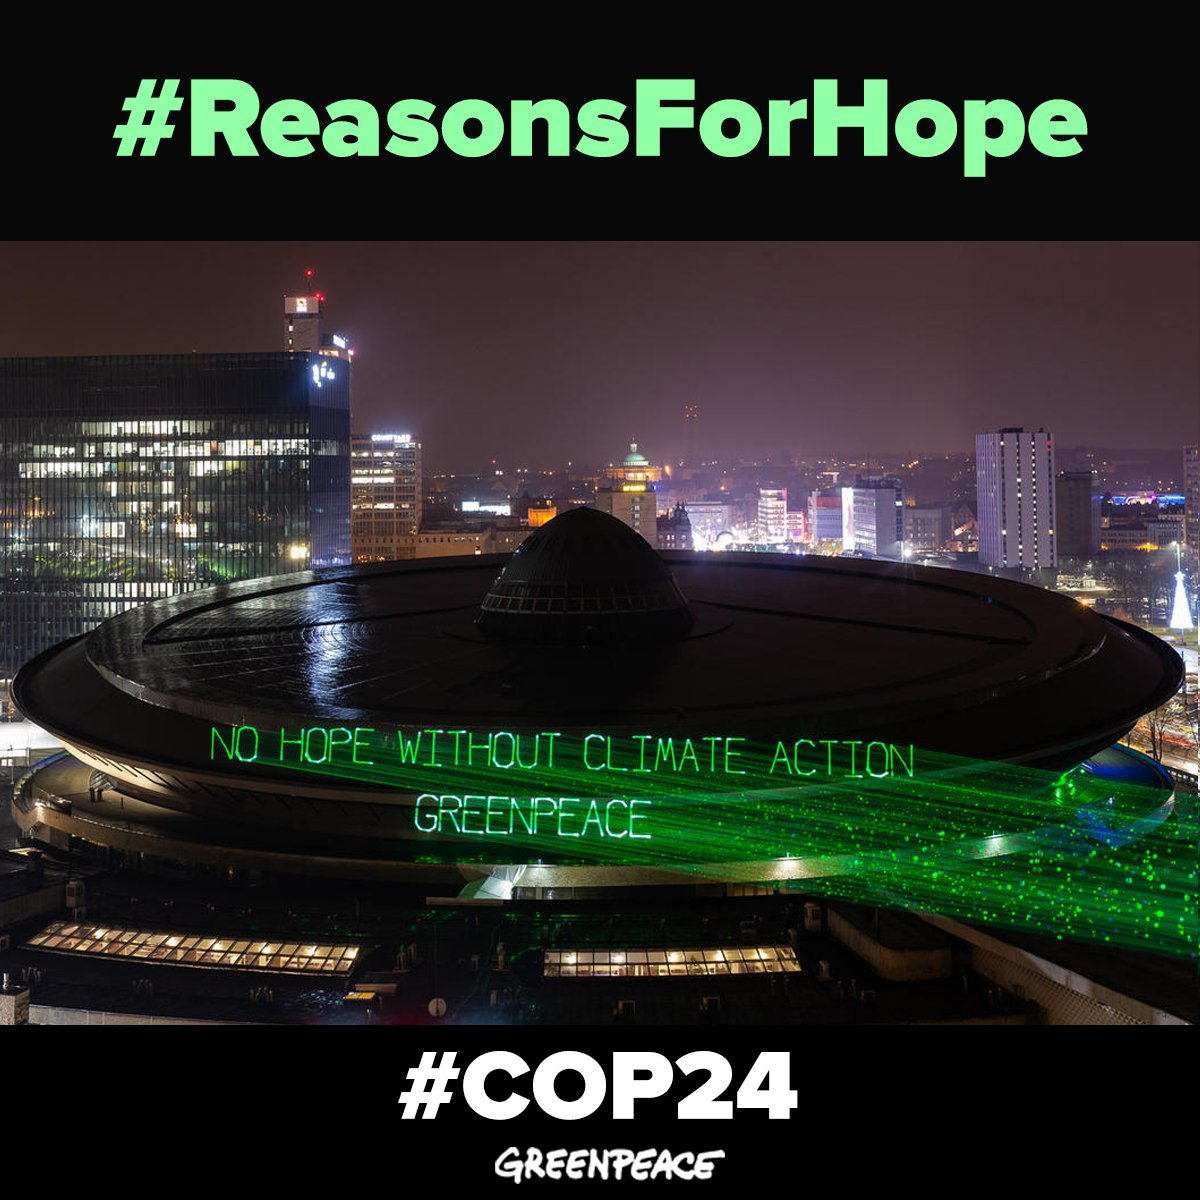 This is a climate emergency. We have to act NOW. act.gp/2zNDl2v #ClimateActionNow #COP24 #ReasonsForHope